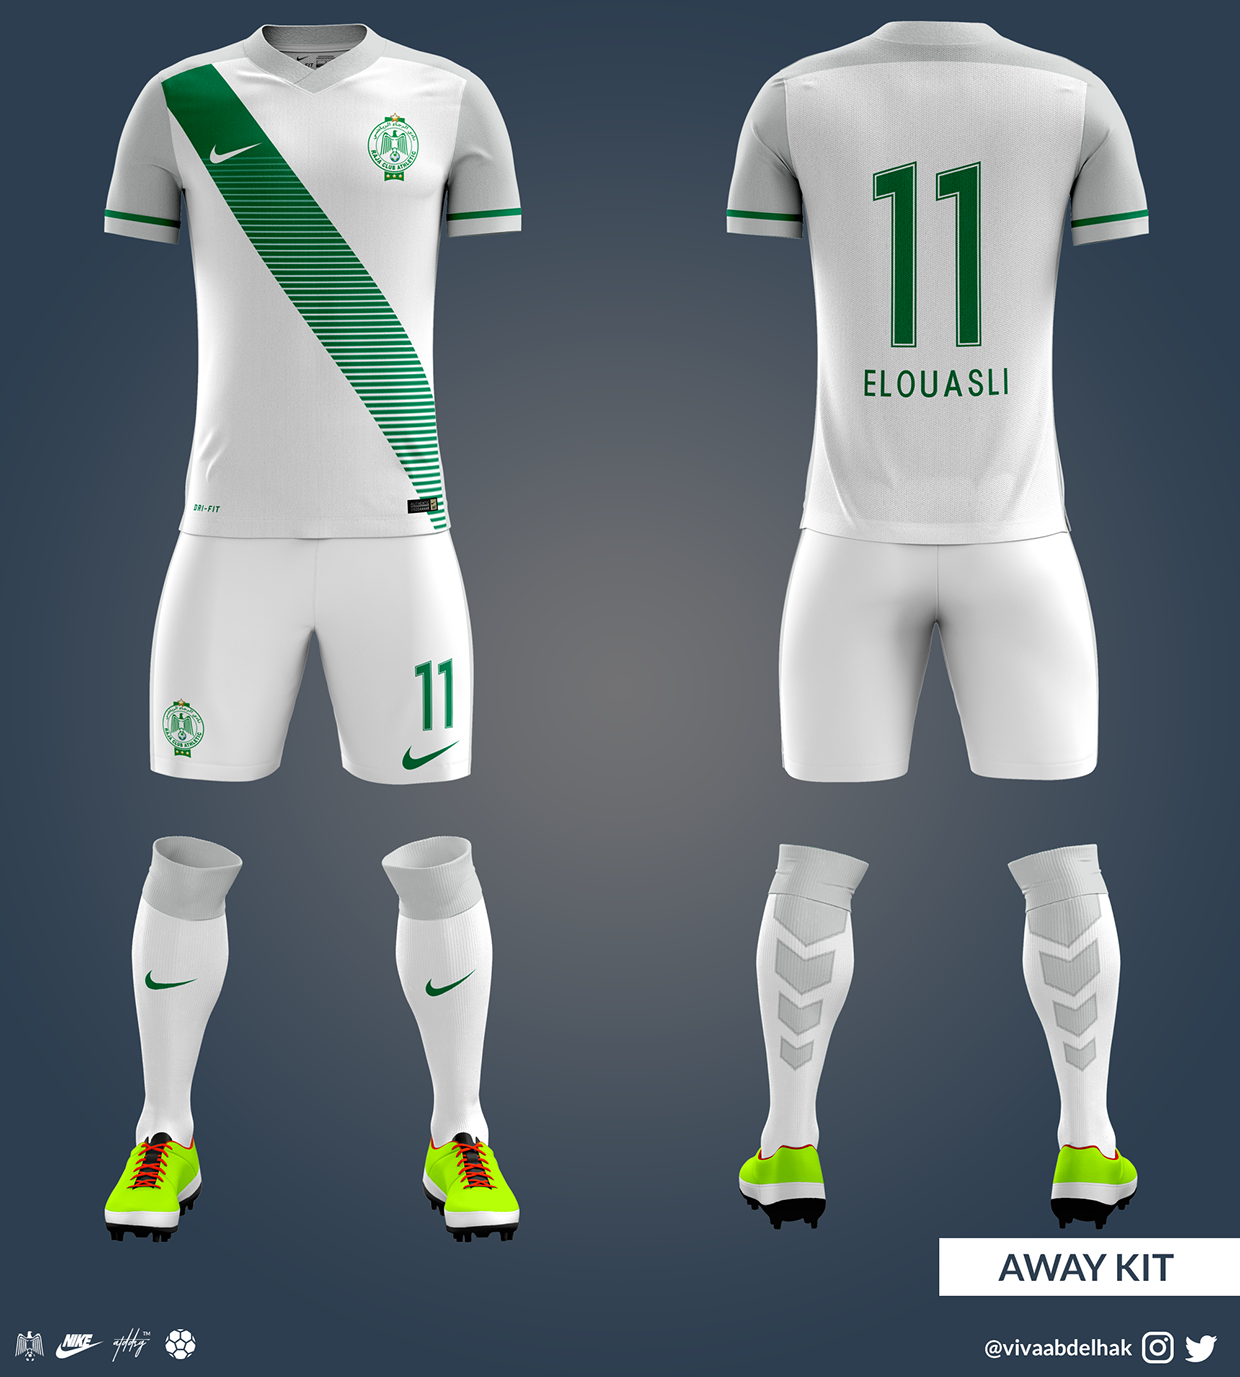 Download 2ac95647416509 5879792a4edc2 Png 1240 1377 Soccer Outfit Football Shirts Soccer Tshirts